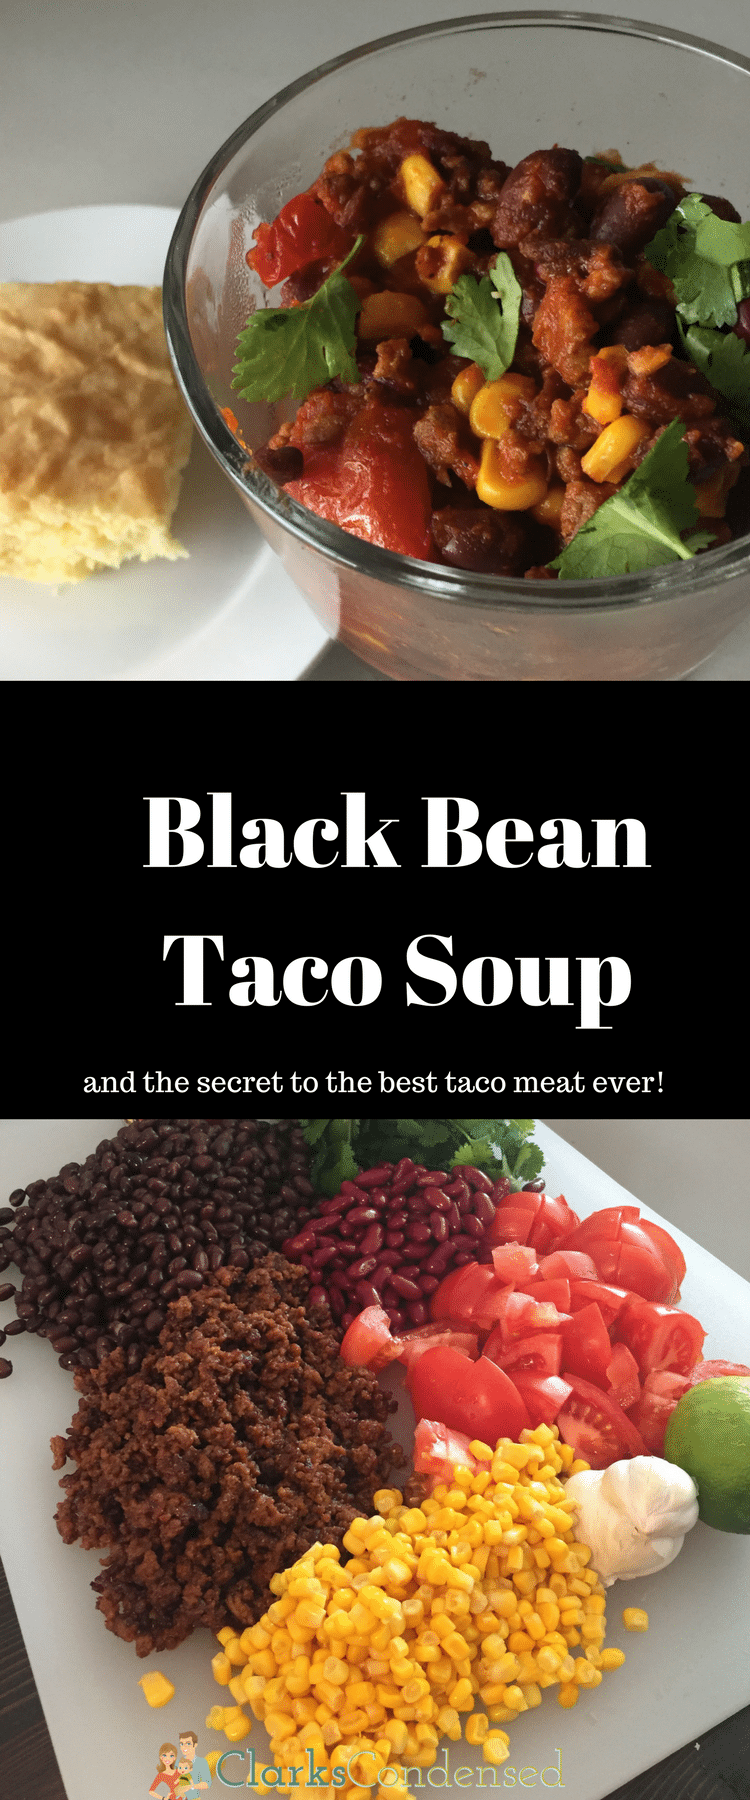 This Black Bean Taco Soup will be your new family favorite! #ad #SWBeans #IC via @clarkscondensed